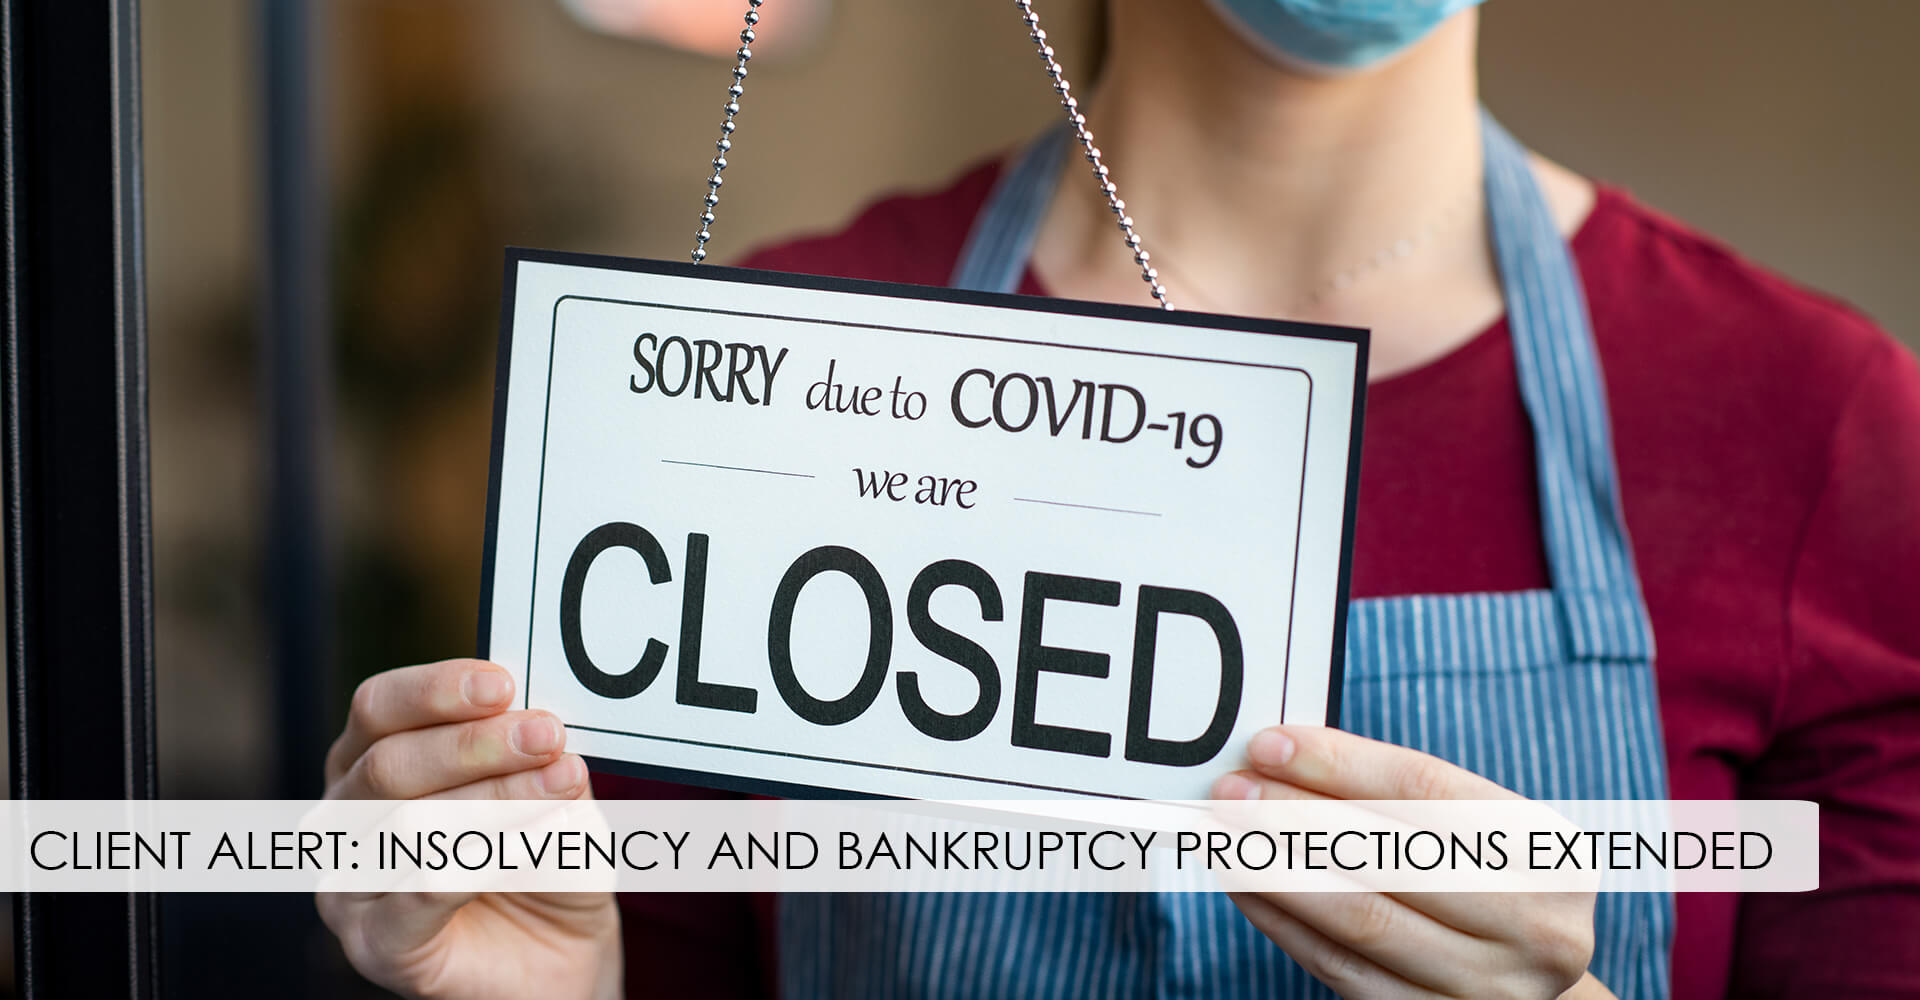 INSOLVENCY AND BANKRUPTCY PROTECTIONS EXTENDED